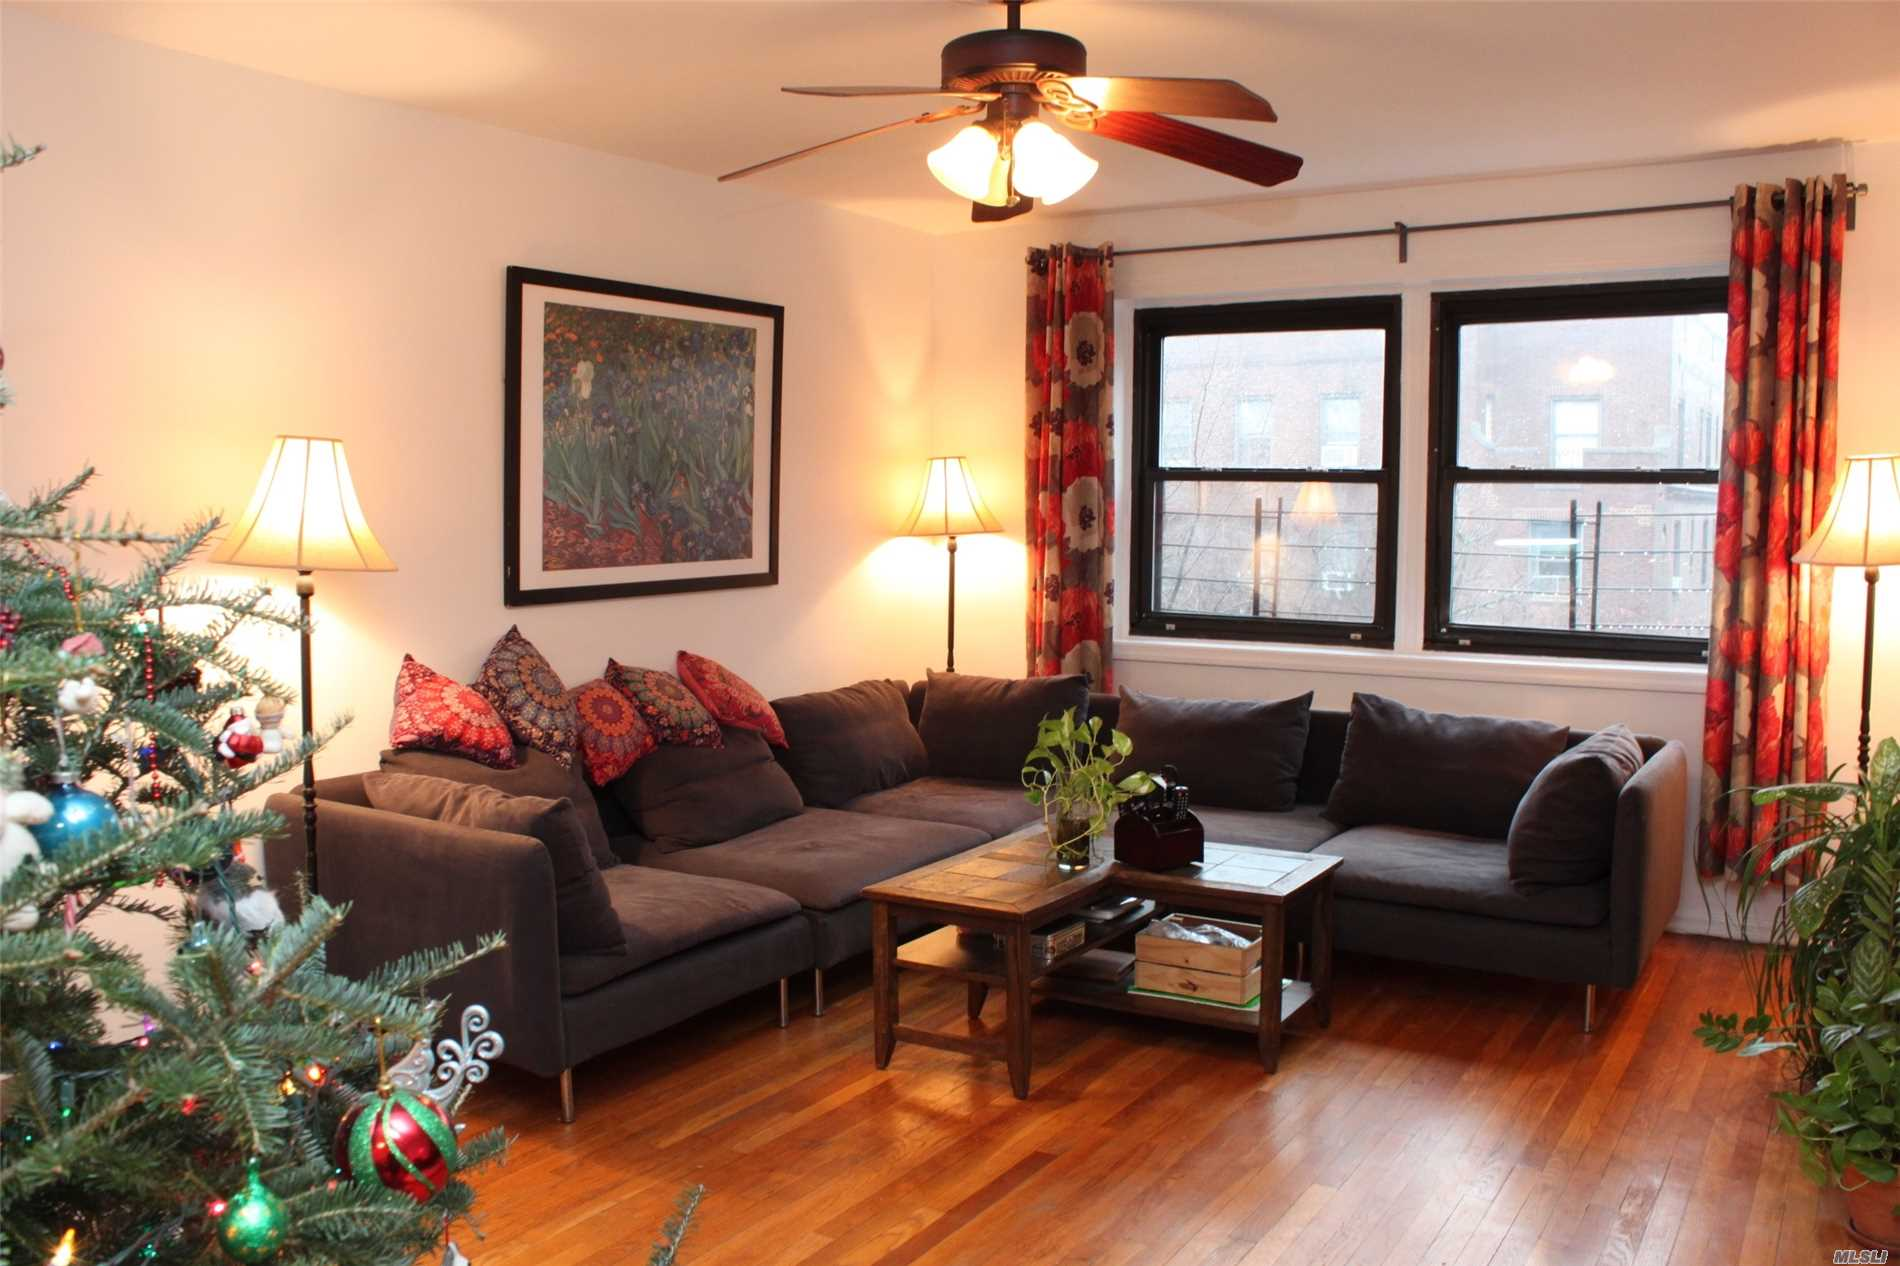 Move Right In To This Spacious Two Bedroom At Forest & Gardens. Some Features Include A Newly Renovated Kitchen & Bath, Gleaming Hardwood Floors & Spacious Closets. Enjoy Plenty Of Sunlight And Views Of Lush Gardens And Greenery. Forest & Gardens Is A Gated Community On Park-Like Grounds Complete With Fountains And Benches. Short Walk To E&F Or J&Z Subway Or Lirr For A 12 Minute Commute To Penn Station! Enjoy Nearby Forest Park Including Trails, Historic Sites, And Playgrounds.